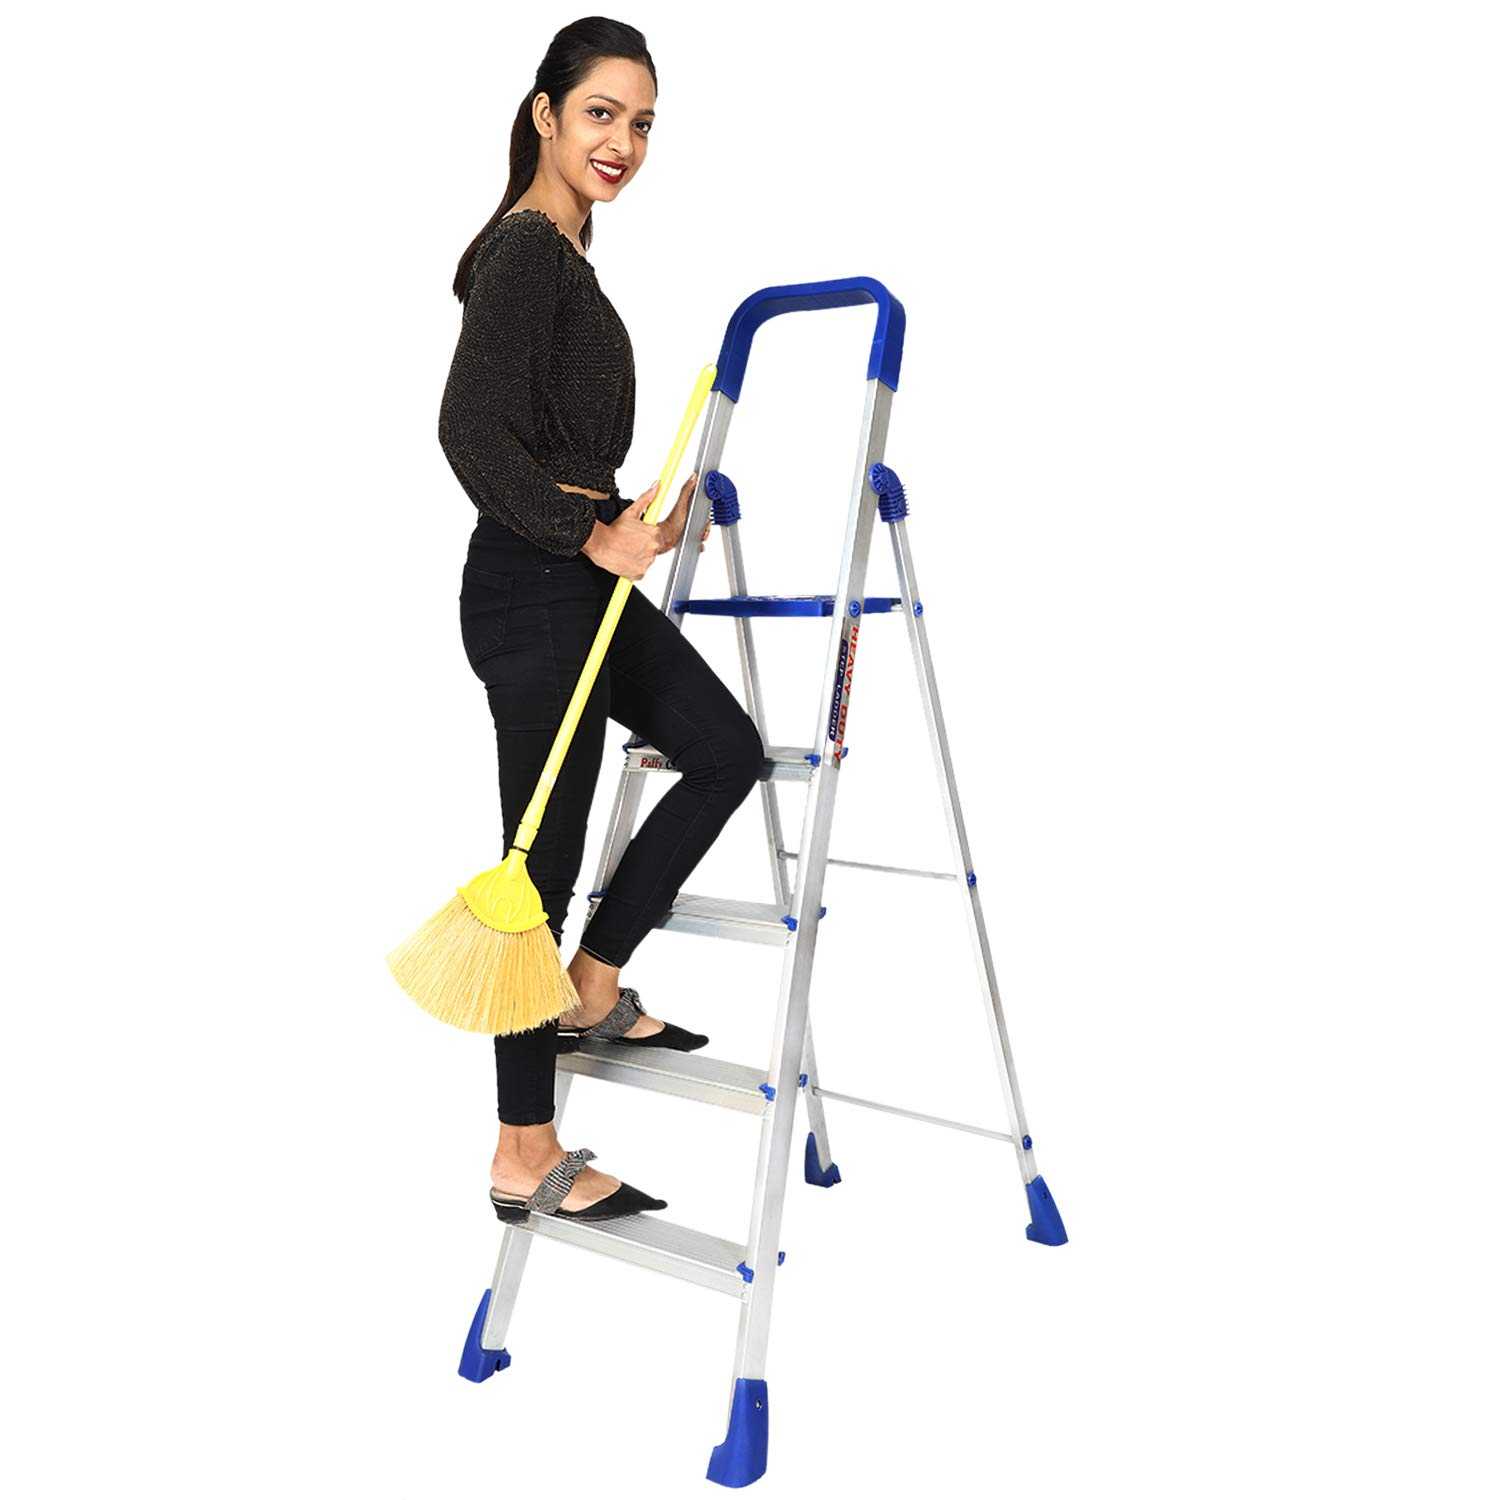 PAffy Premium Light Weight Aluminium Heavy Duty Folding Step Ladder - Maple 5 Steps (Made In India)